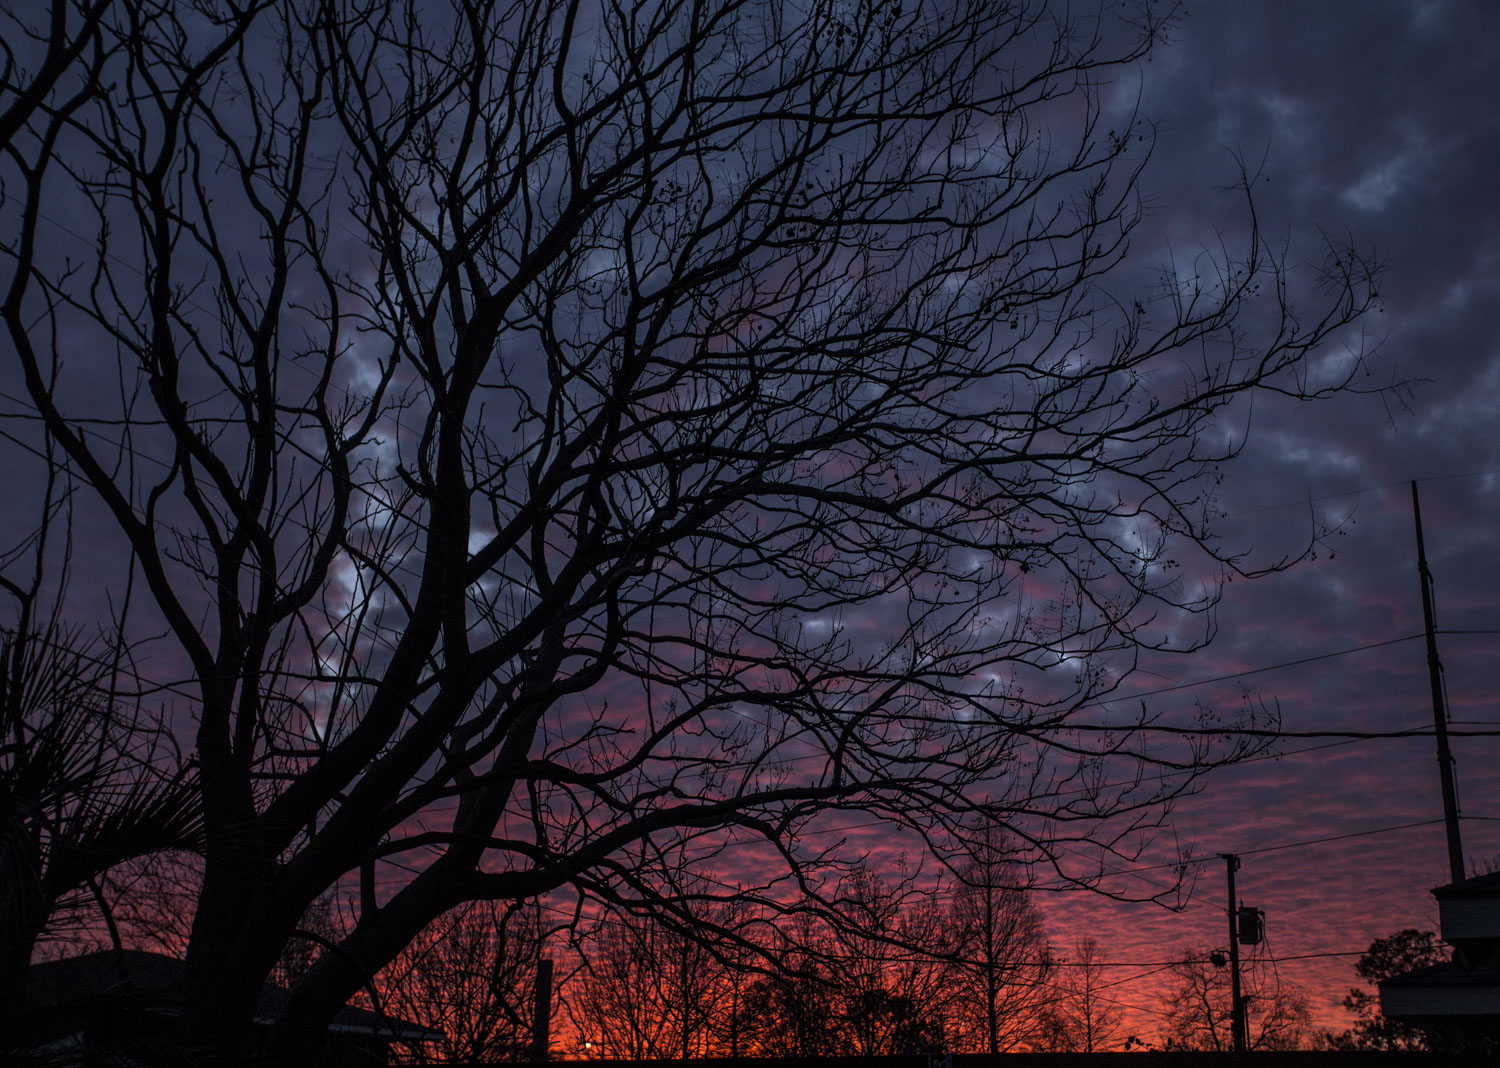 Zack-Smith-Photography-New-Orleans-How-to-tuesday-#27-Long-Exposure-Best-Night-Photography-Tree-No-Leaves-Sky-Clouds-Beautiful-Purple-Blue-Orange-Pink-Sunset-Dark-Chill